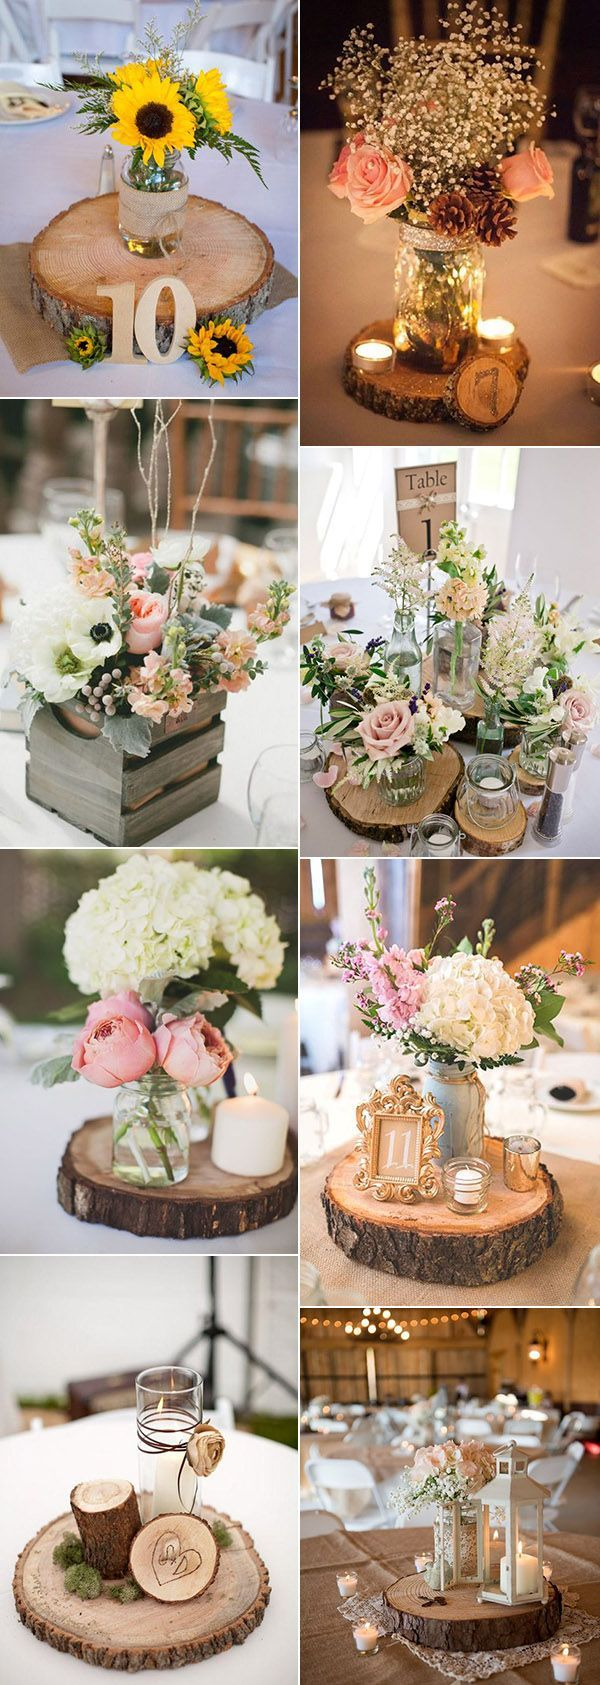 diy beach theme wedding centerpieces%0A Best     Rustic wedding centerpieces ideas on Pinterest   Wedding rustic   Rustic wedding decorations and Country wedding decorations